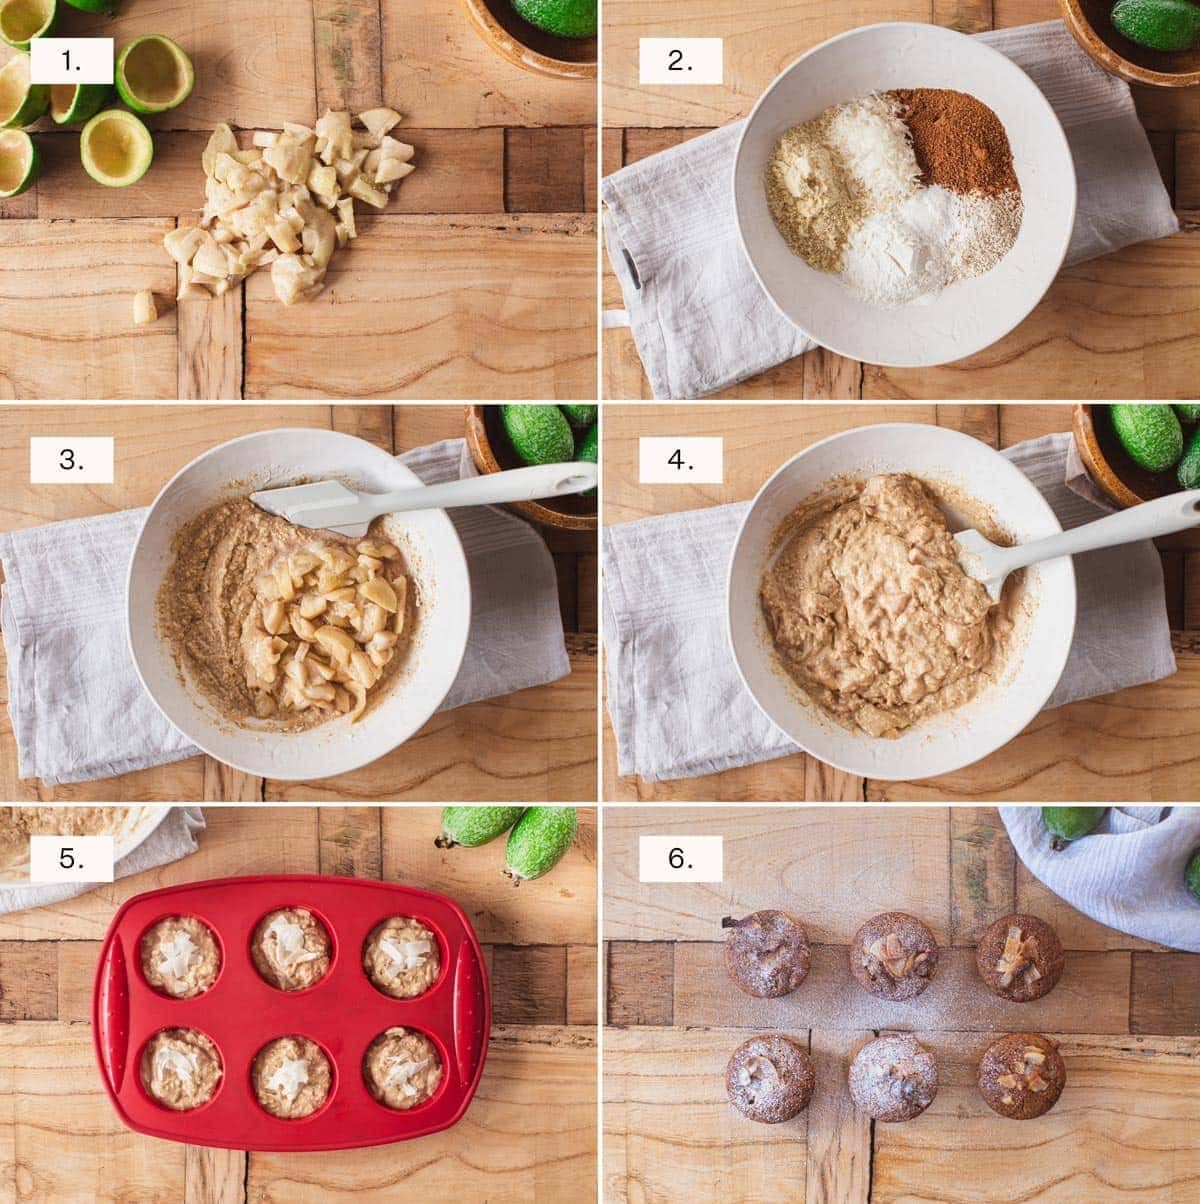 Step by step photos showing how to make the feijoa muffins